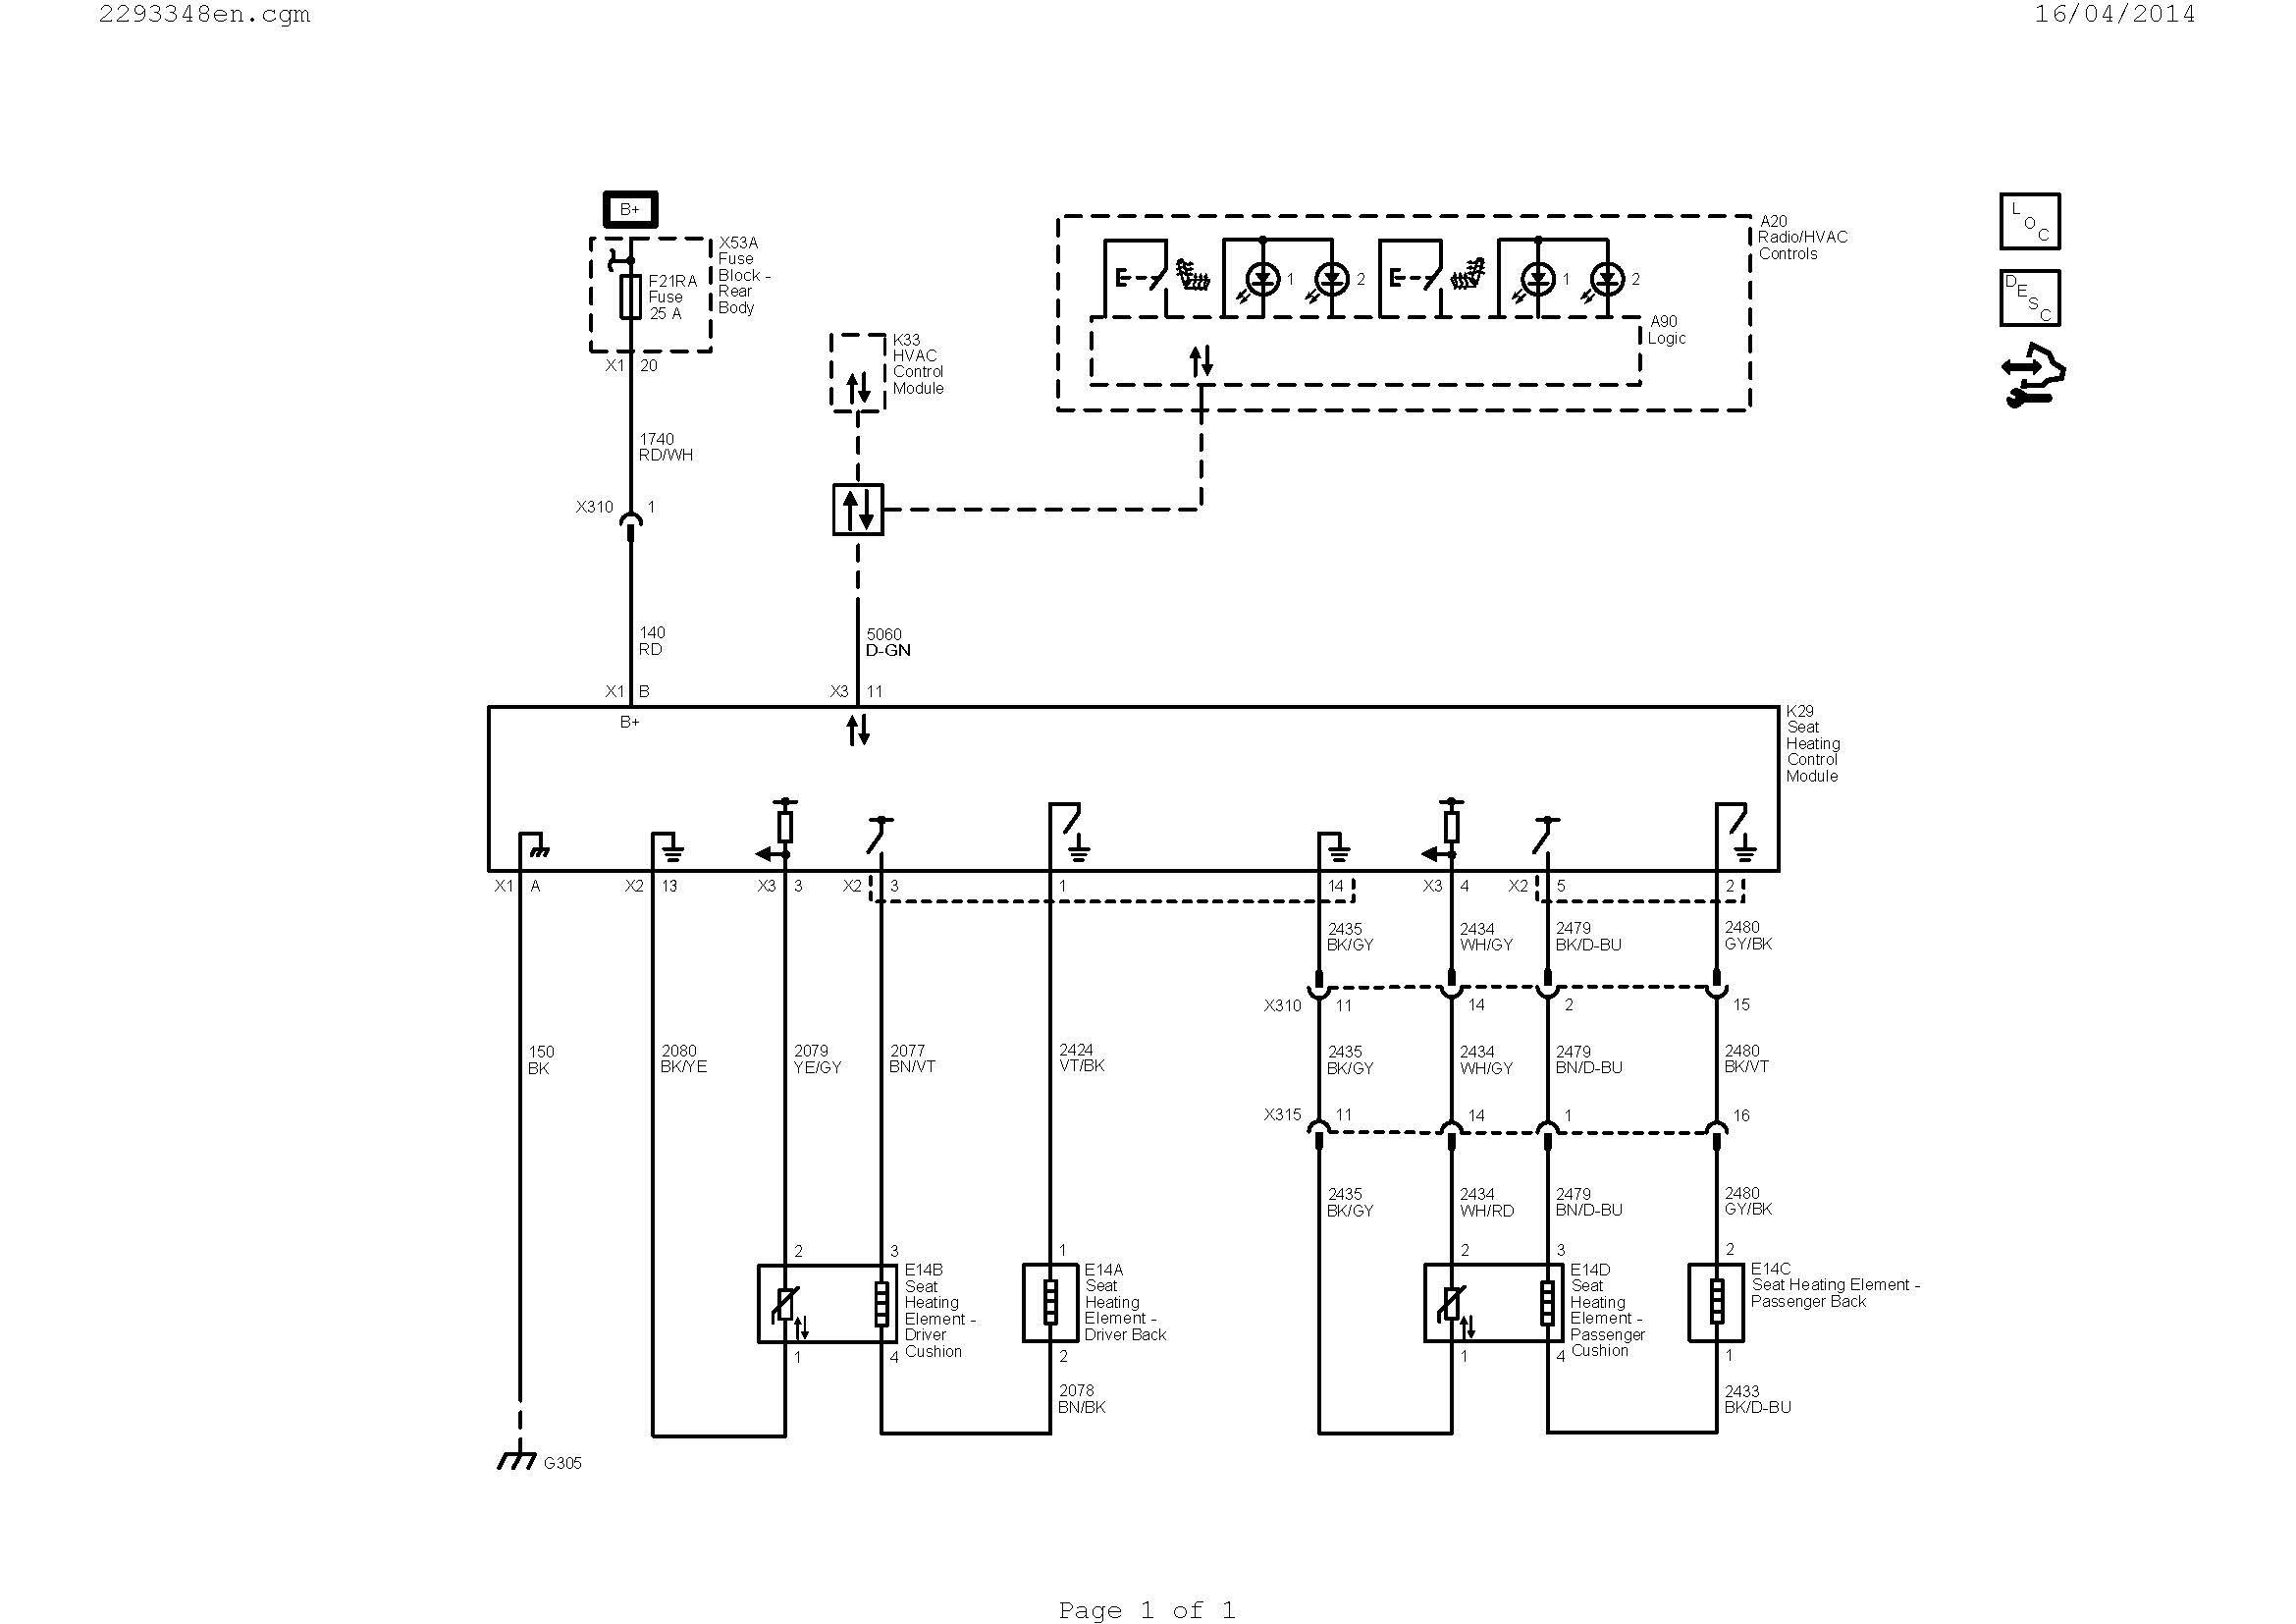 beverage air kf48 1as wiring diagram Download-7 wire thermostat wiring diagram Download Wiring A Ac Thermostat Diagram New Wiring Diagram Ac 11-p